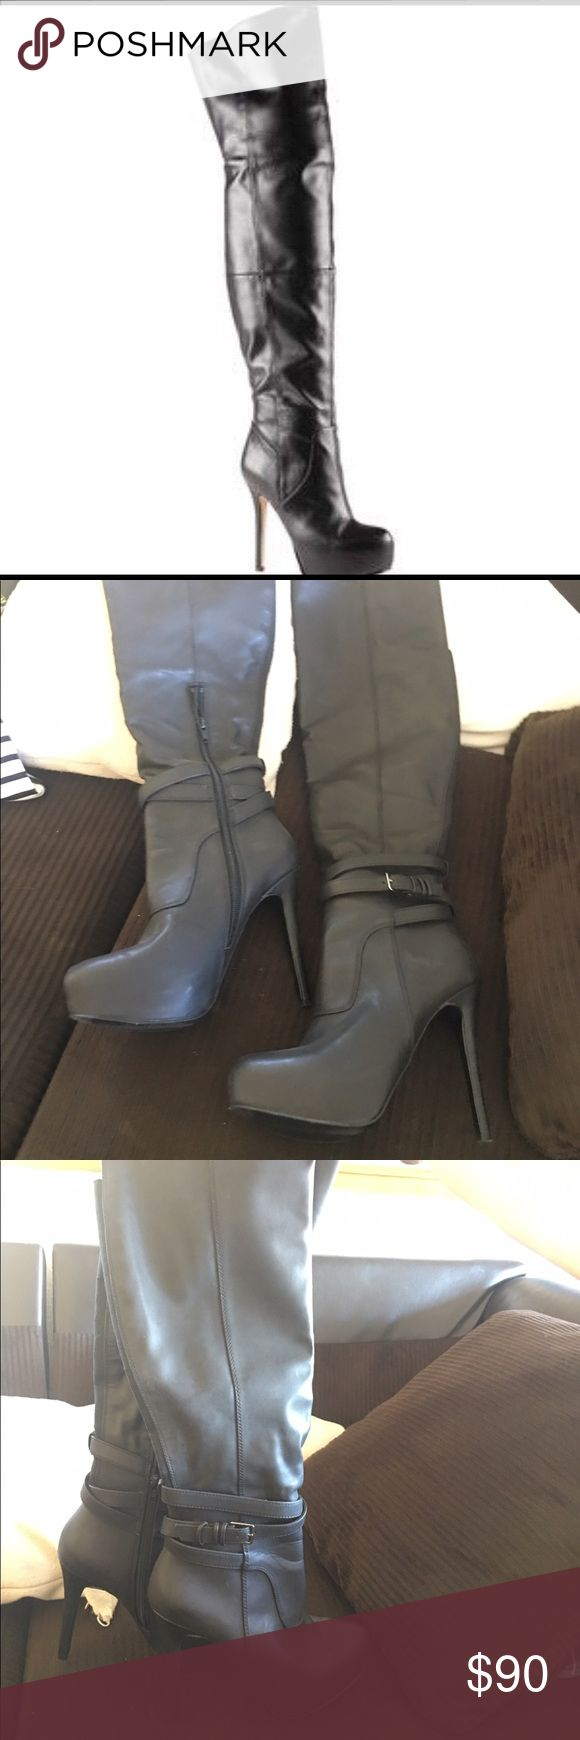 Black Aldo thigh high boots Black leather platform boots, never been worn. BRAND NEW. 5 inch heel. Height is 24 inches, zip closure. Aldo Shoes Over the Knee Boots